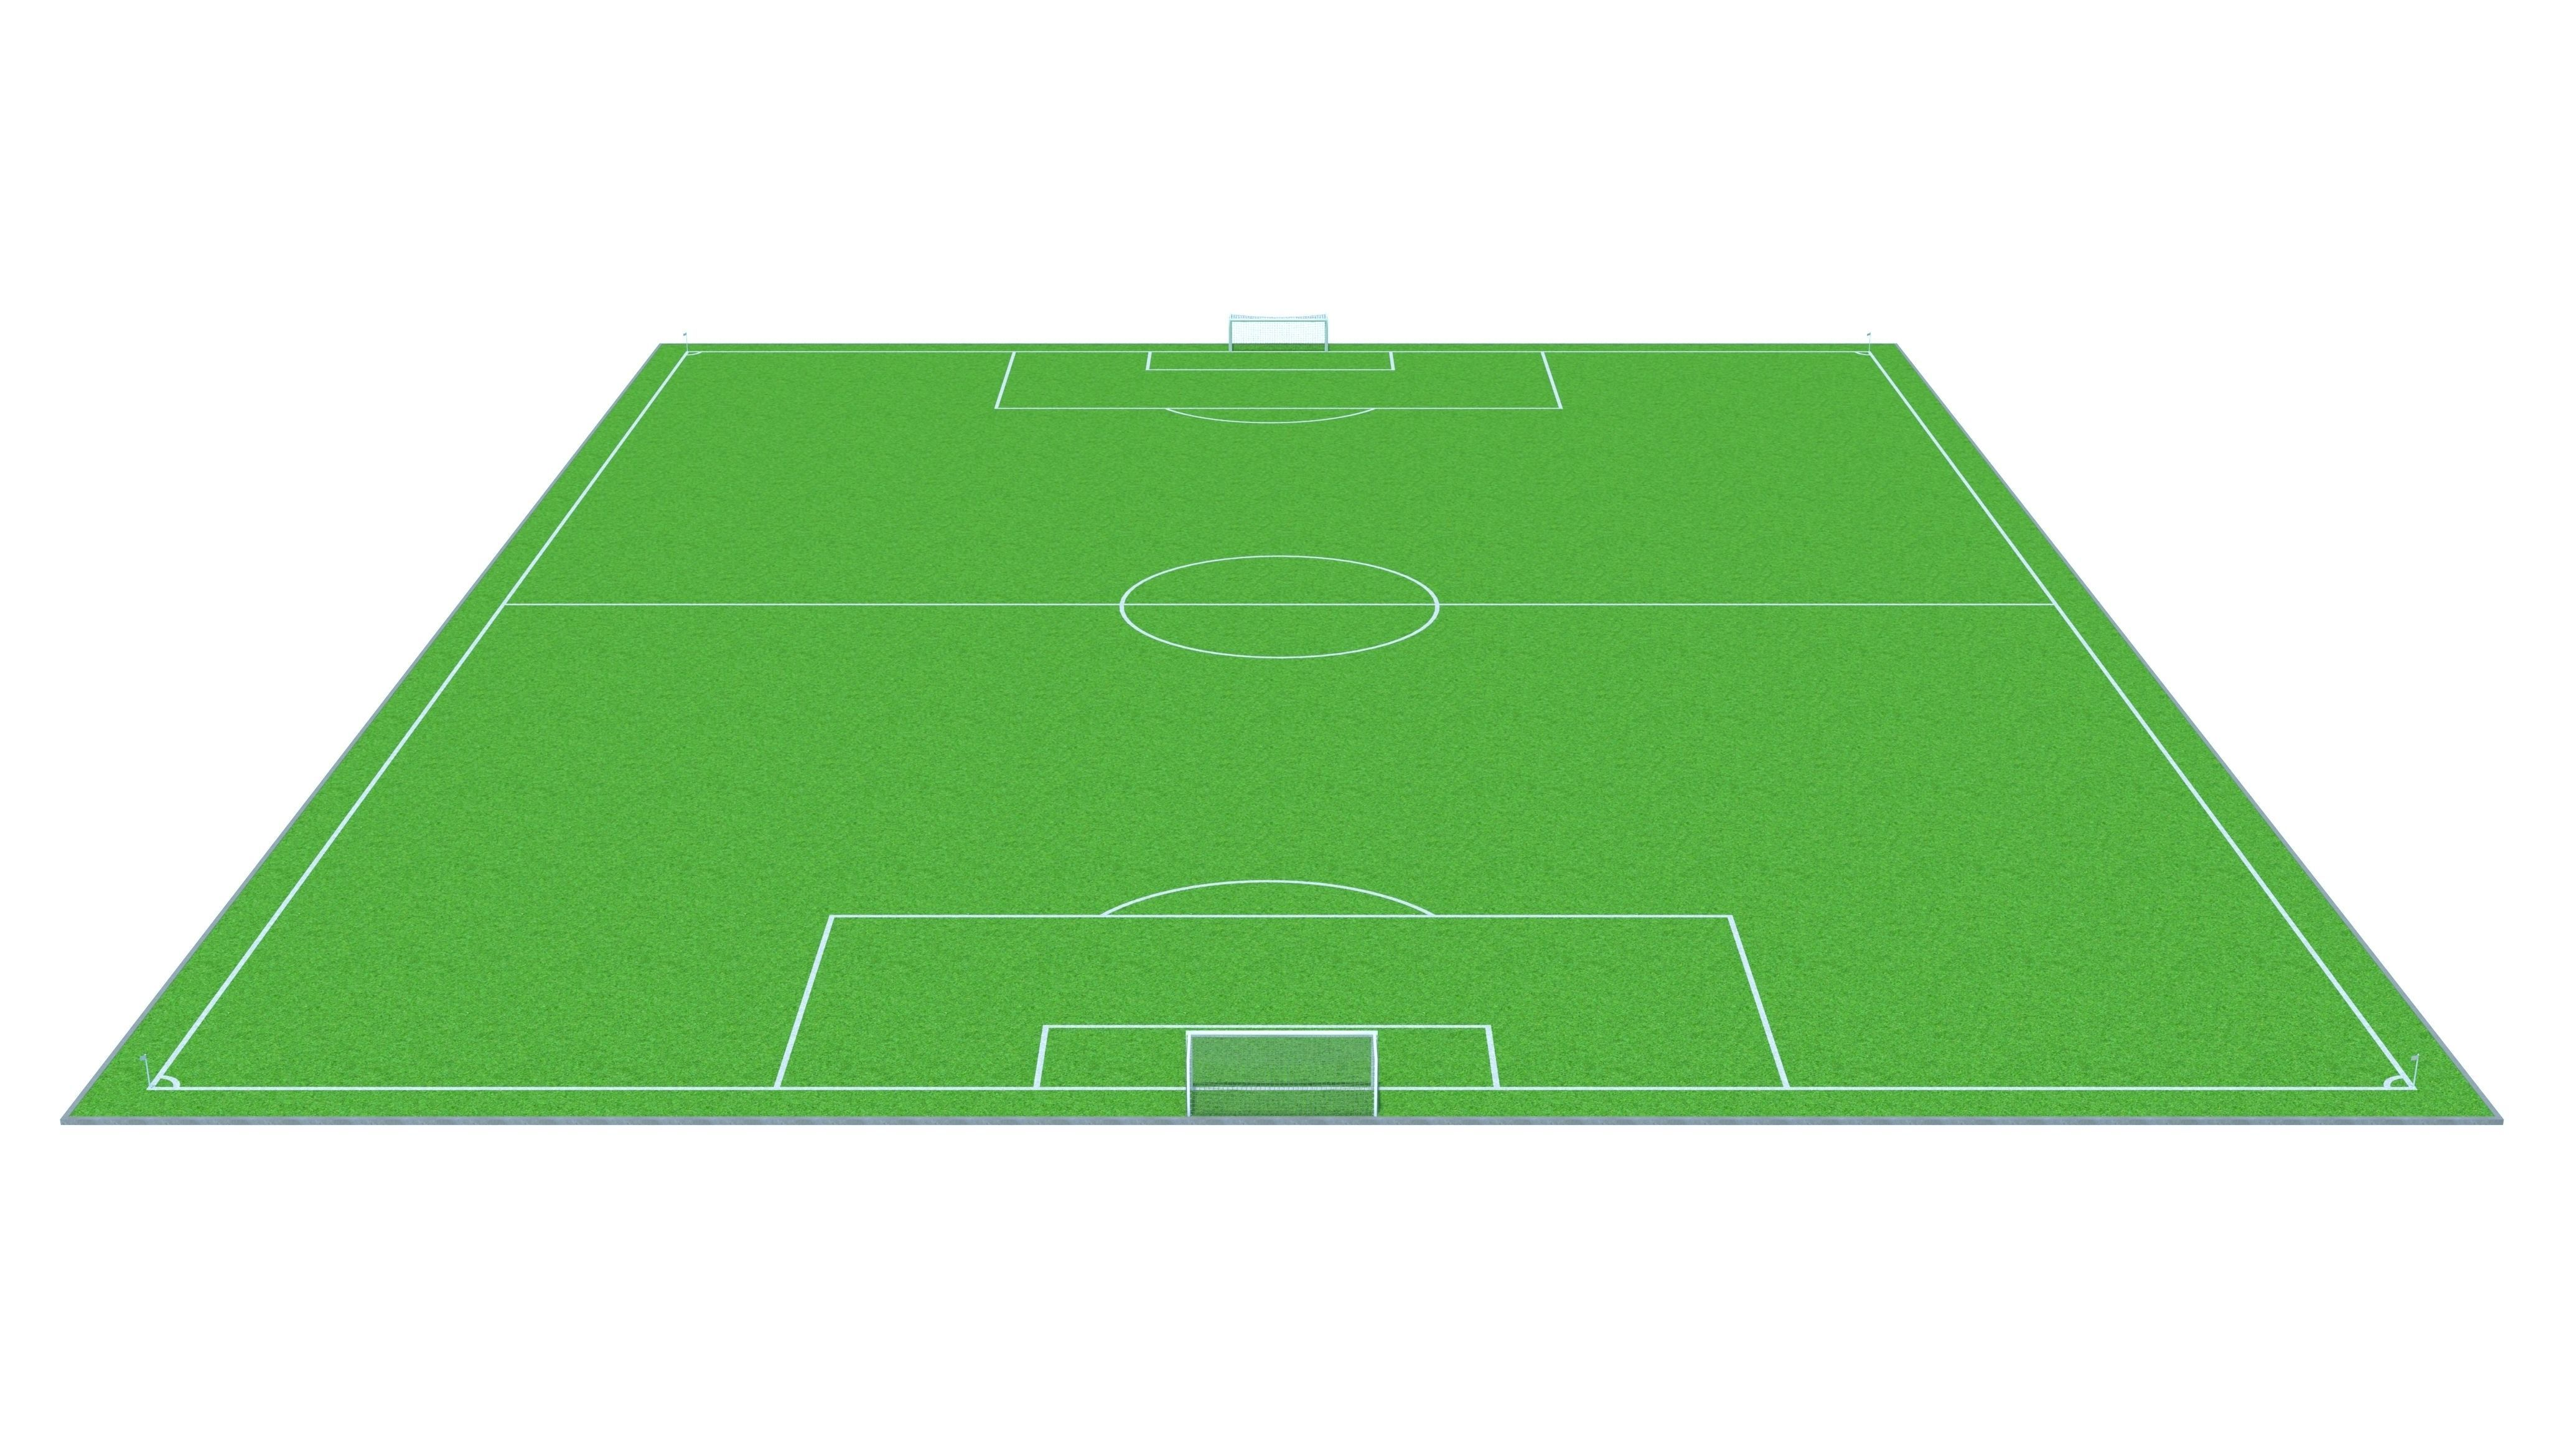 4096x2340 3d Model Game Ready Football Field Cgtrader